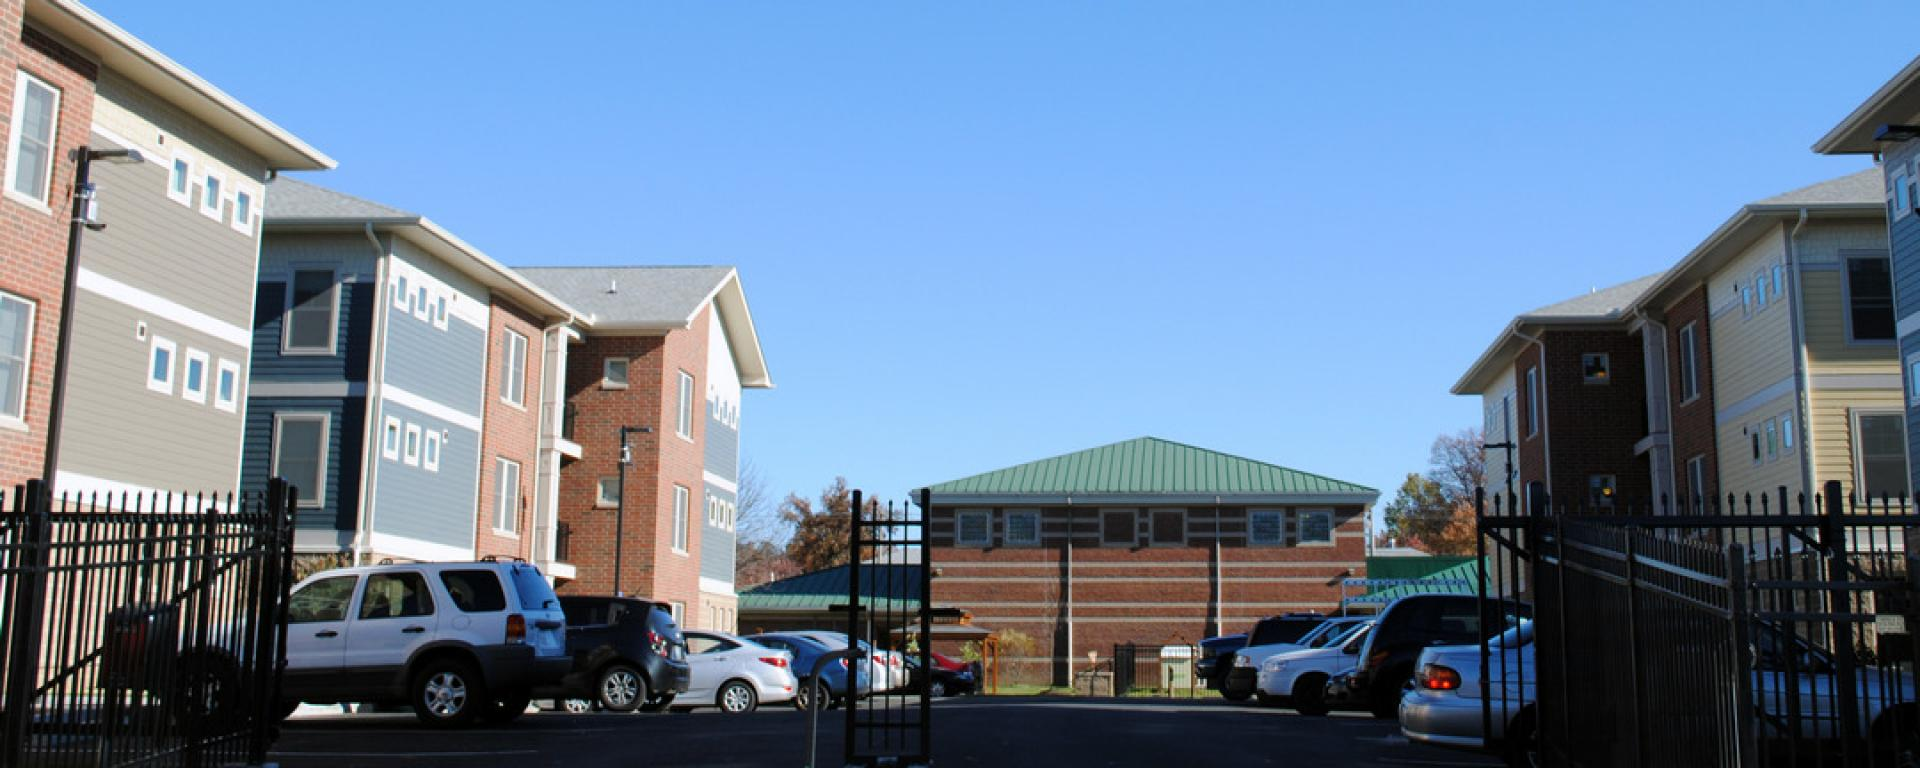 Parking lot view of Scholar House